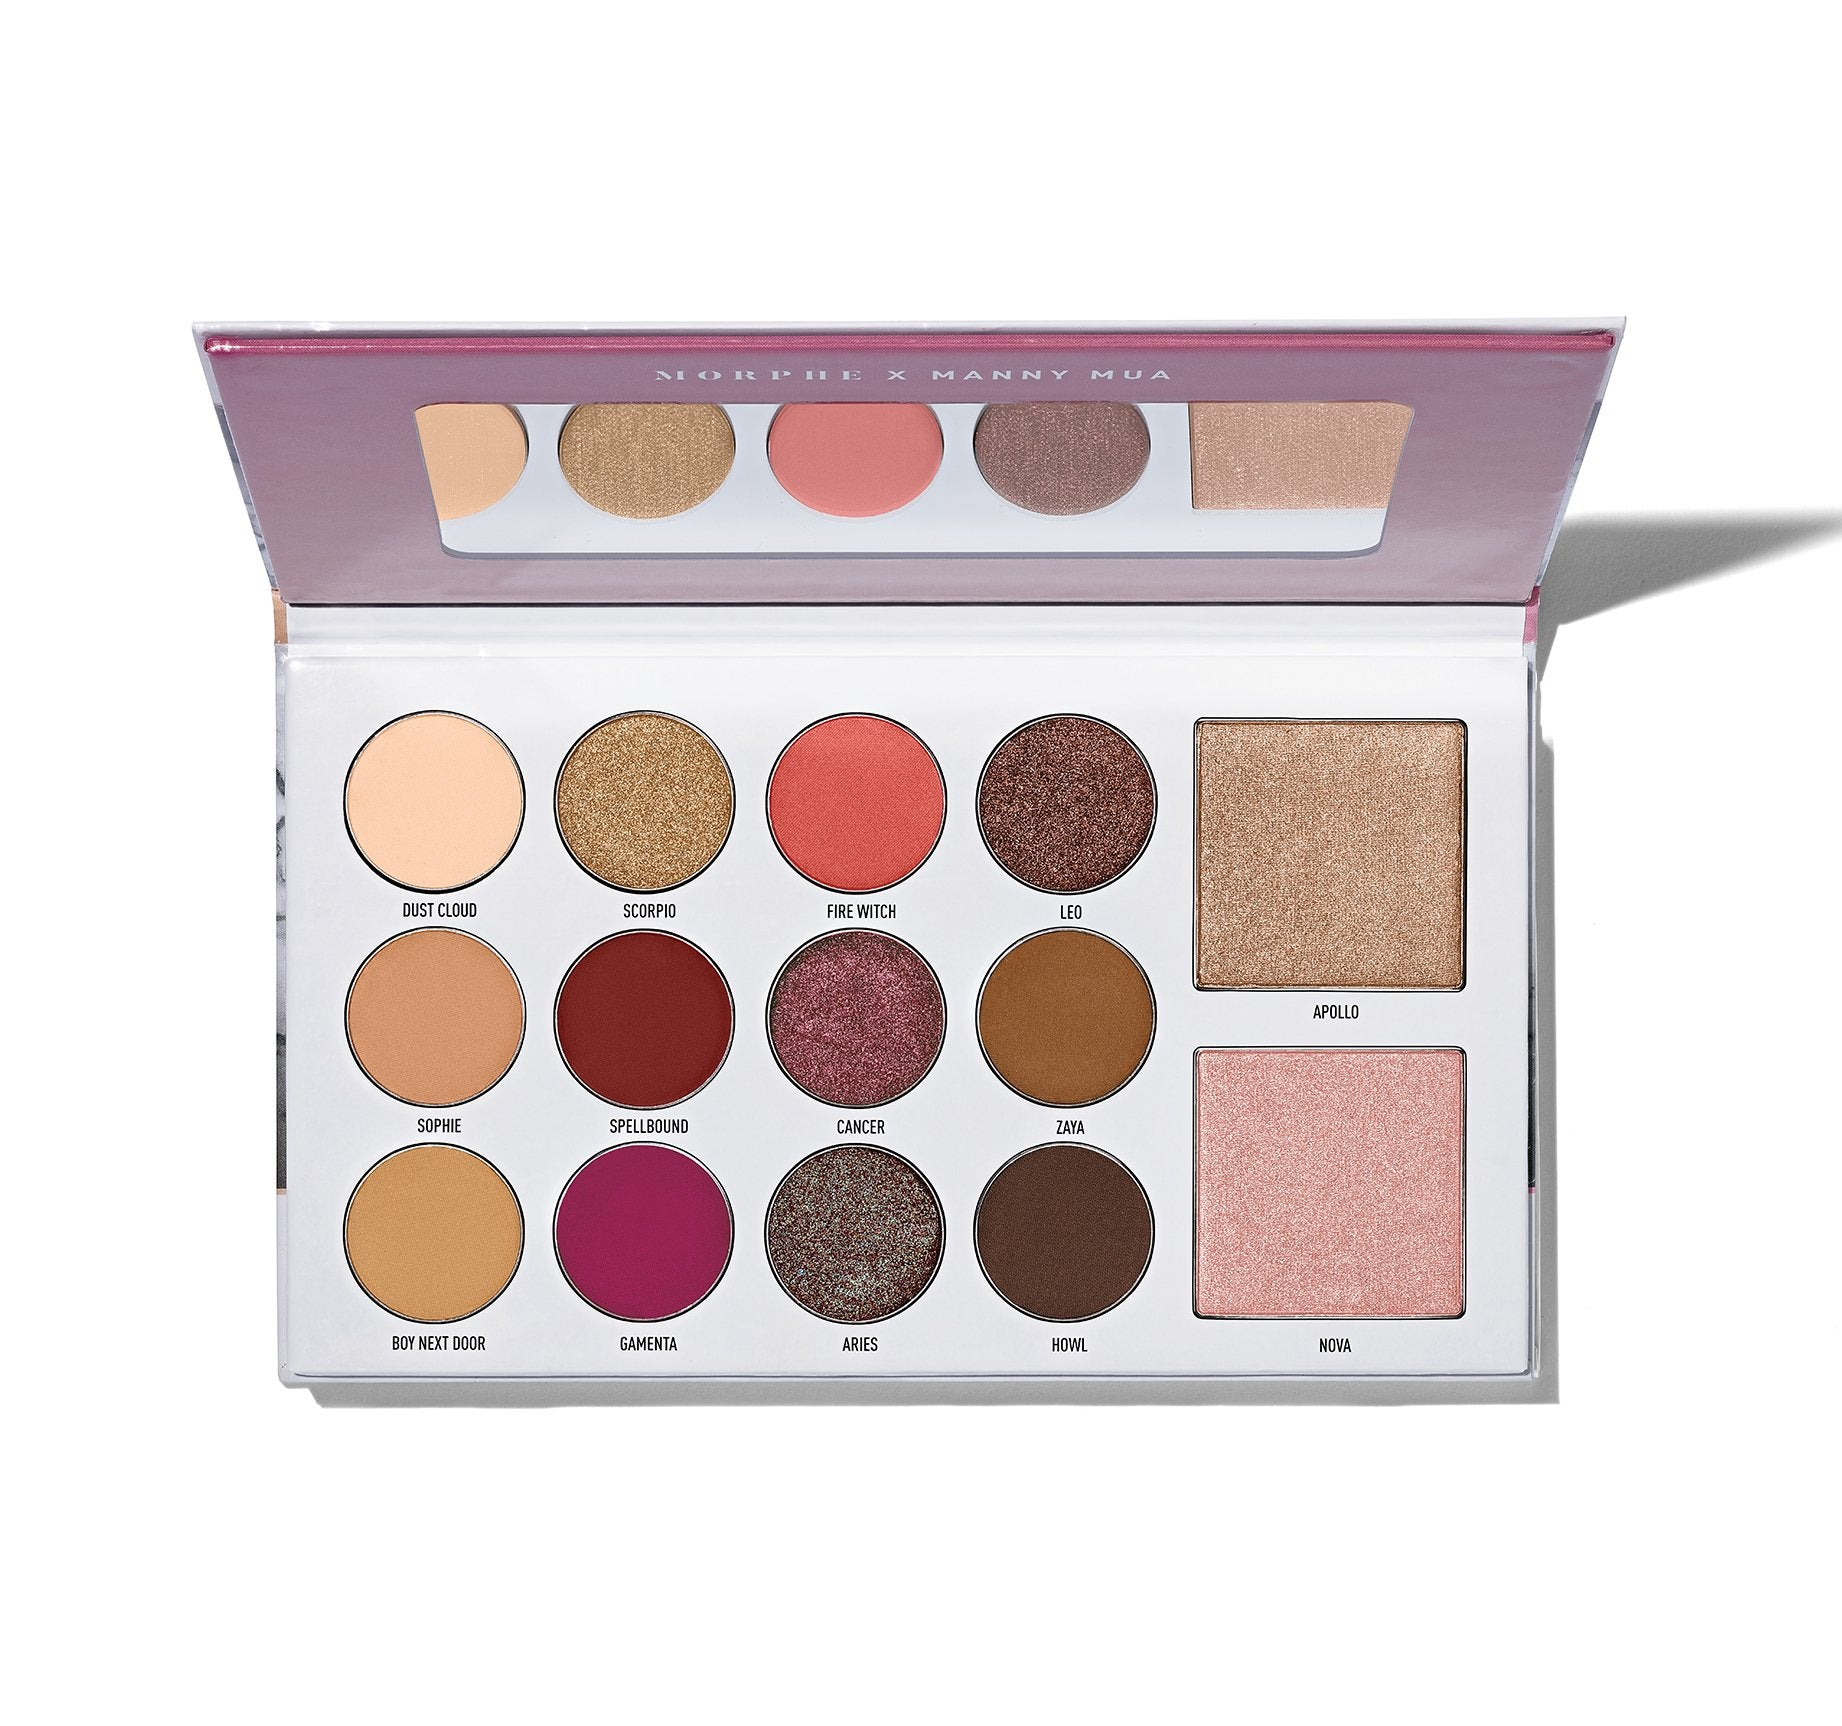 MORPHE X MANNY MUA GLAM PALETTE EYESHADOW + HIGHLIGHTER PALETTE, view larger image